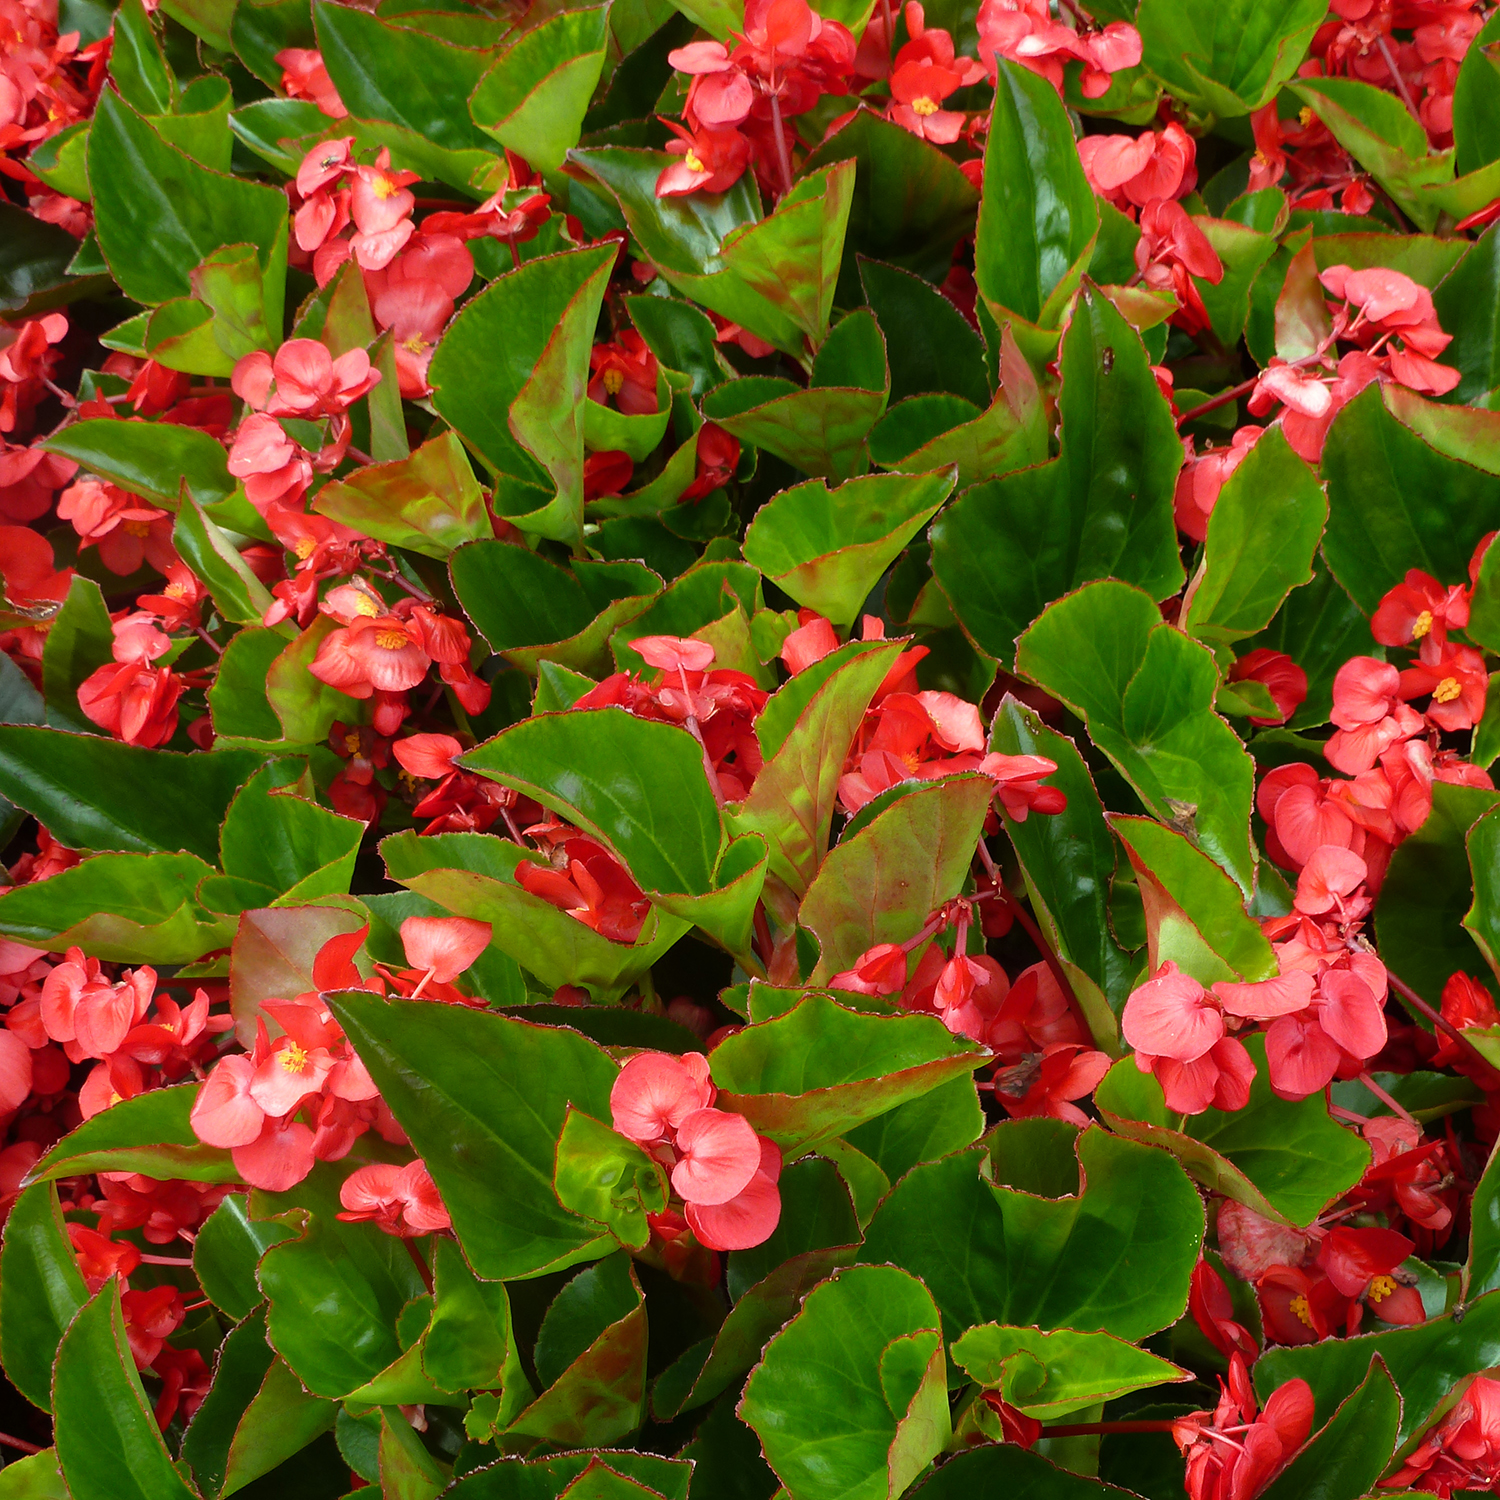 how to take care of begonia plants